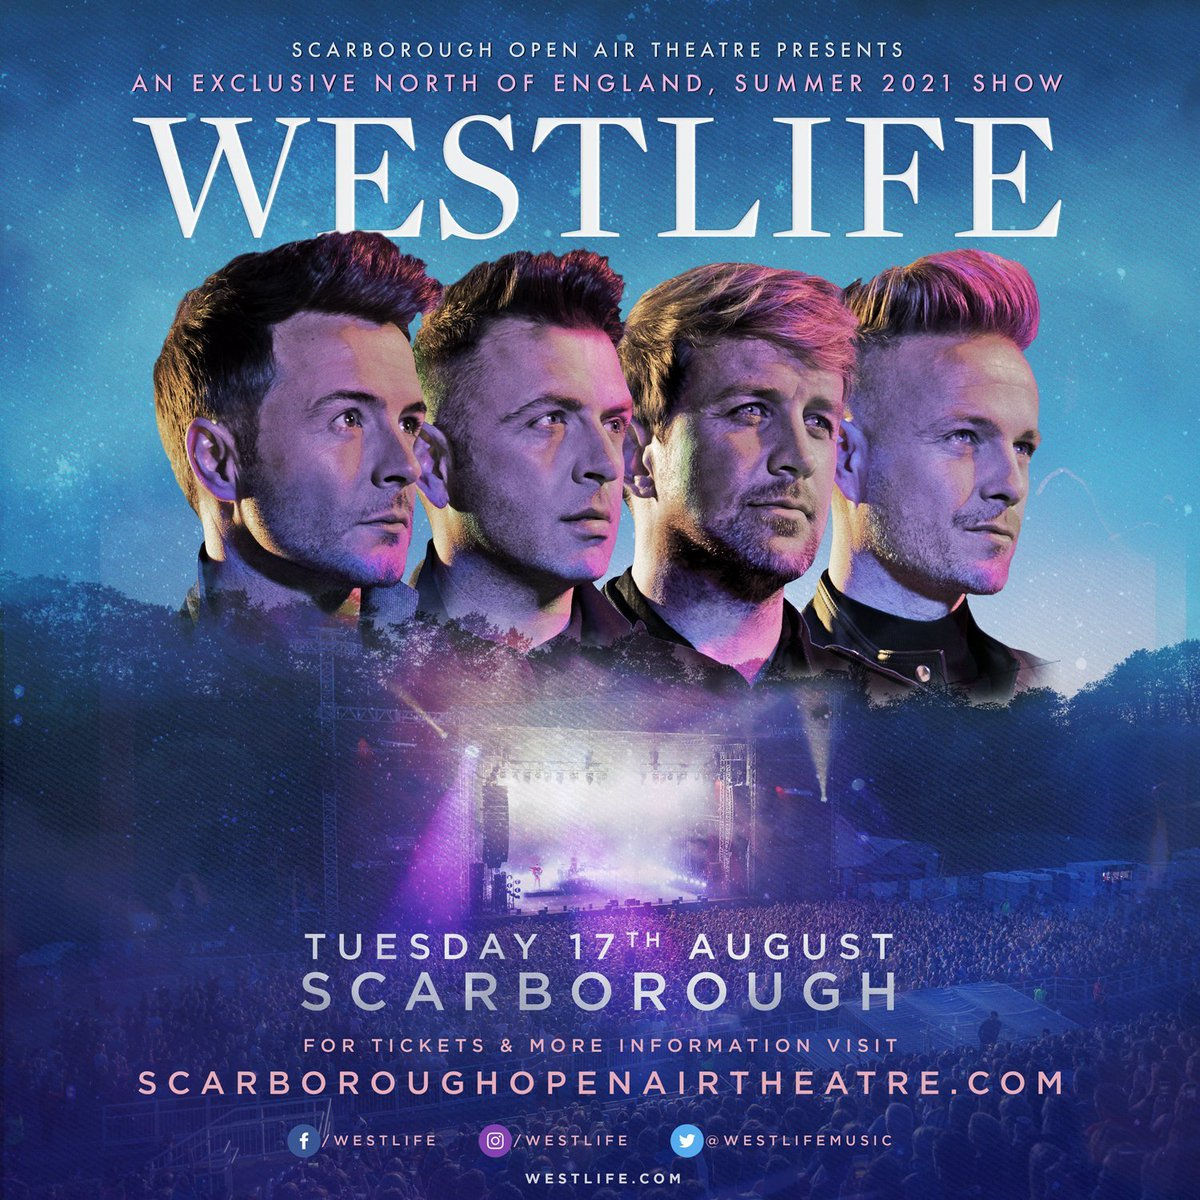 Presale // Get early access to tickets for @westlifemusic at Scarborough Open Air Theatre in August 2021. Presale begins 9am Thursday: https://t.co/aJiVgUFxMv https://t.co/6UtLGWJwyA